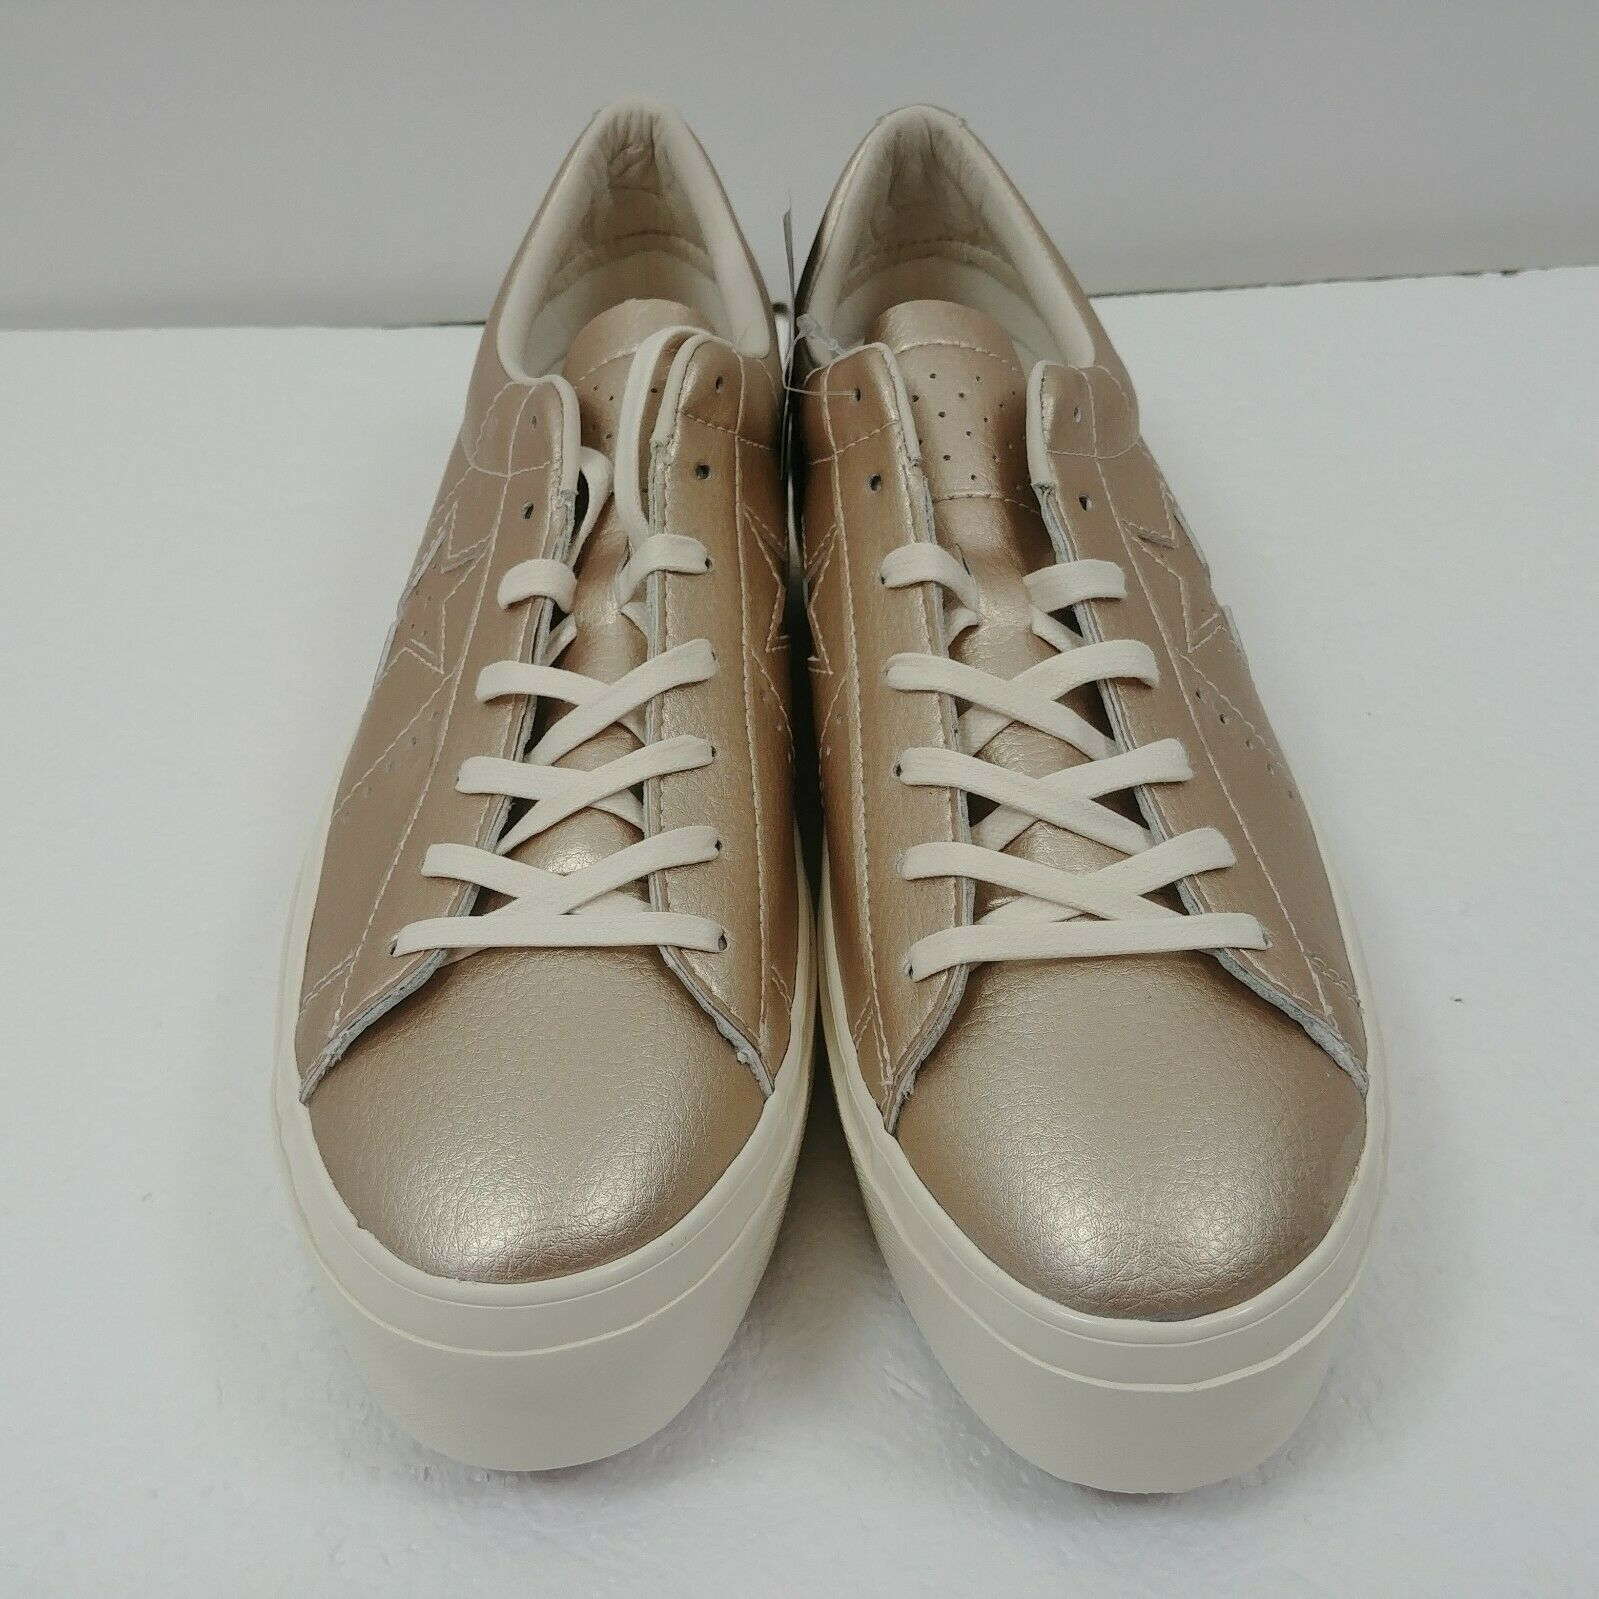 Converse One Star Platform Ox Low Top Shoes Gold 559924C Womens Size 10 NWT image 6